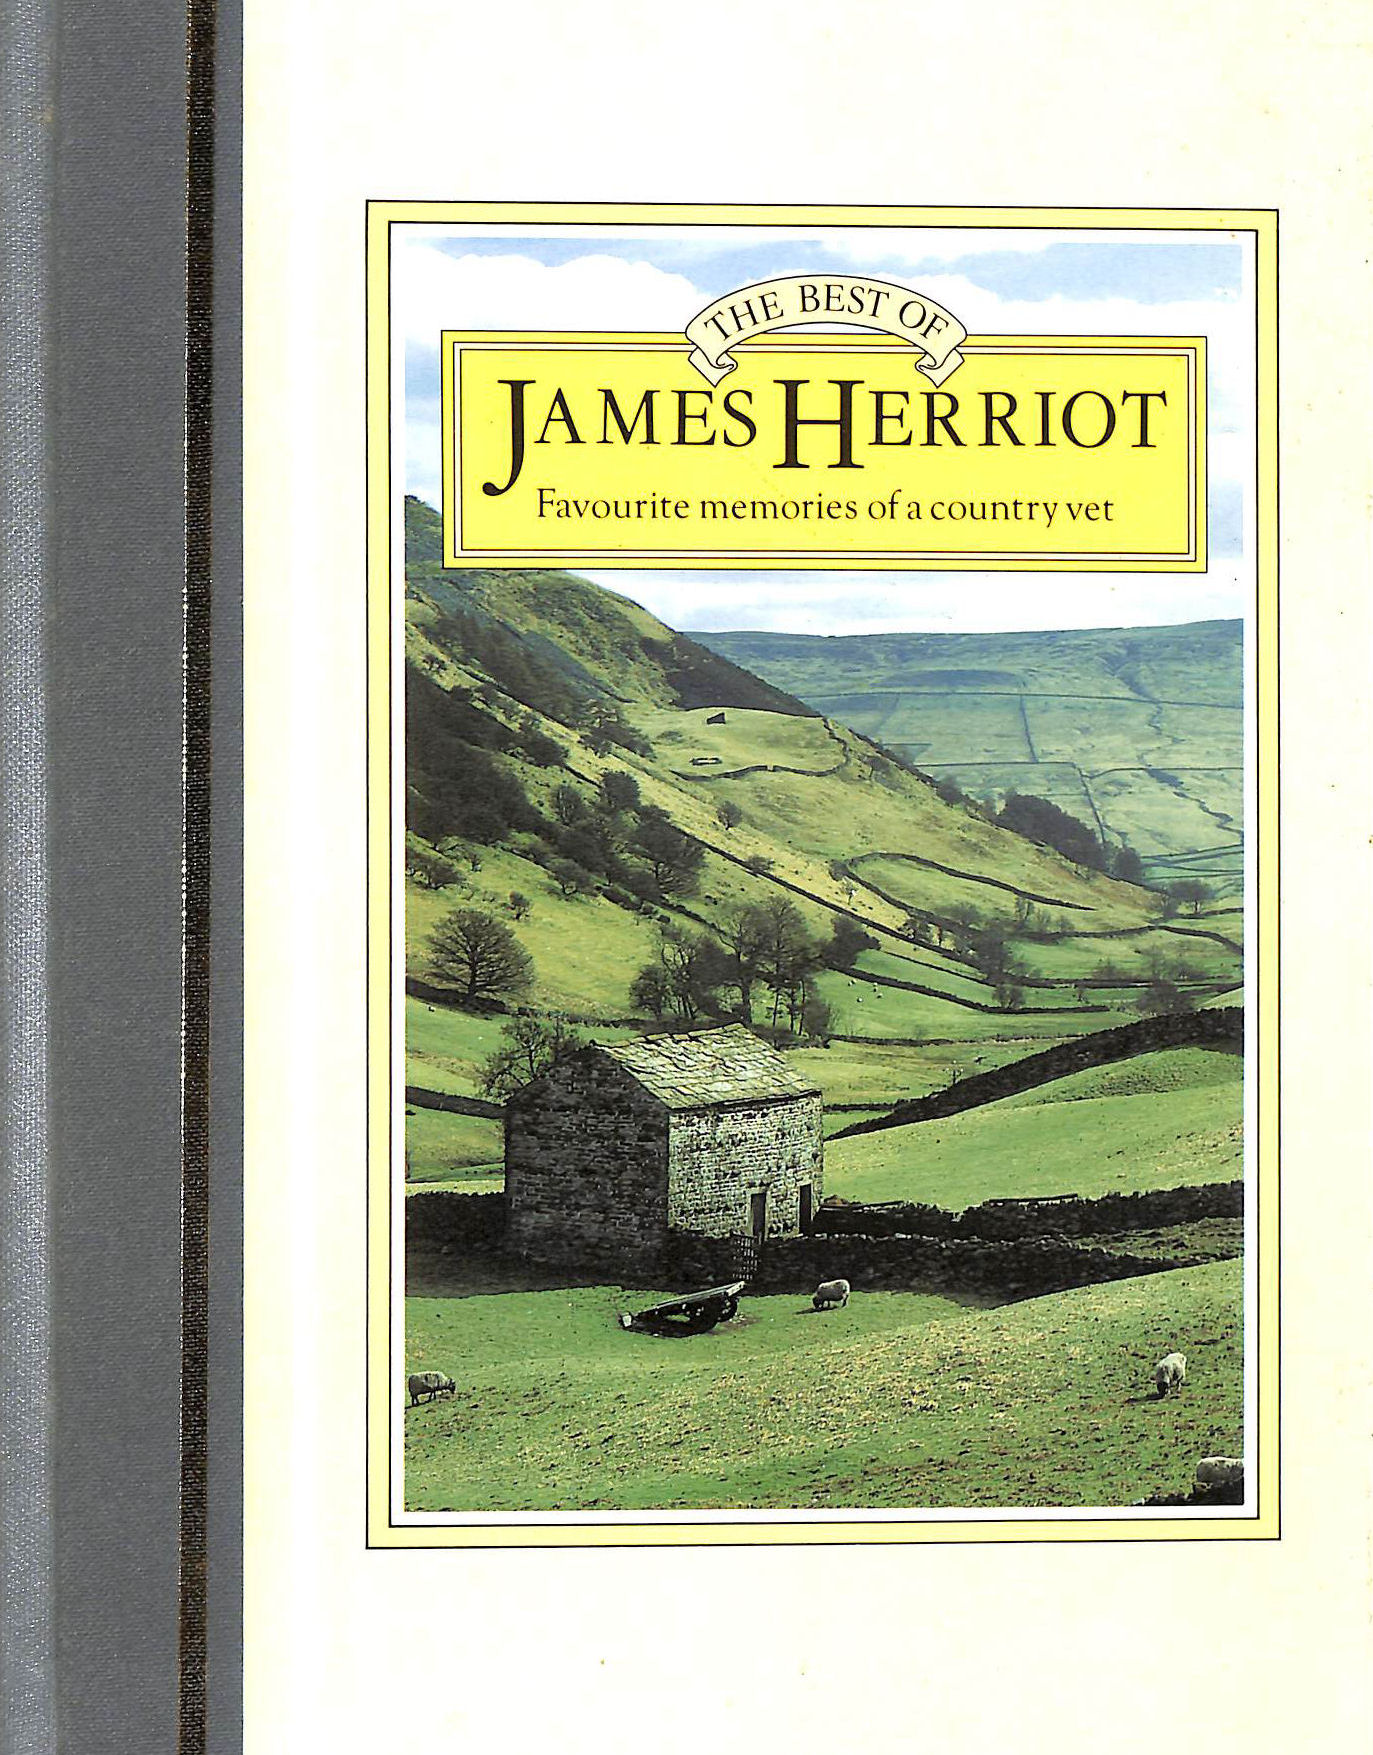 Image for The Best Of James Herriot: Favourite Memories Of A Country Vet : James Herriot'S Own Selection From His Original Books, With Additional Material By Reader'S Digest Editors By James Herriot (1987-01-01)